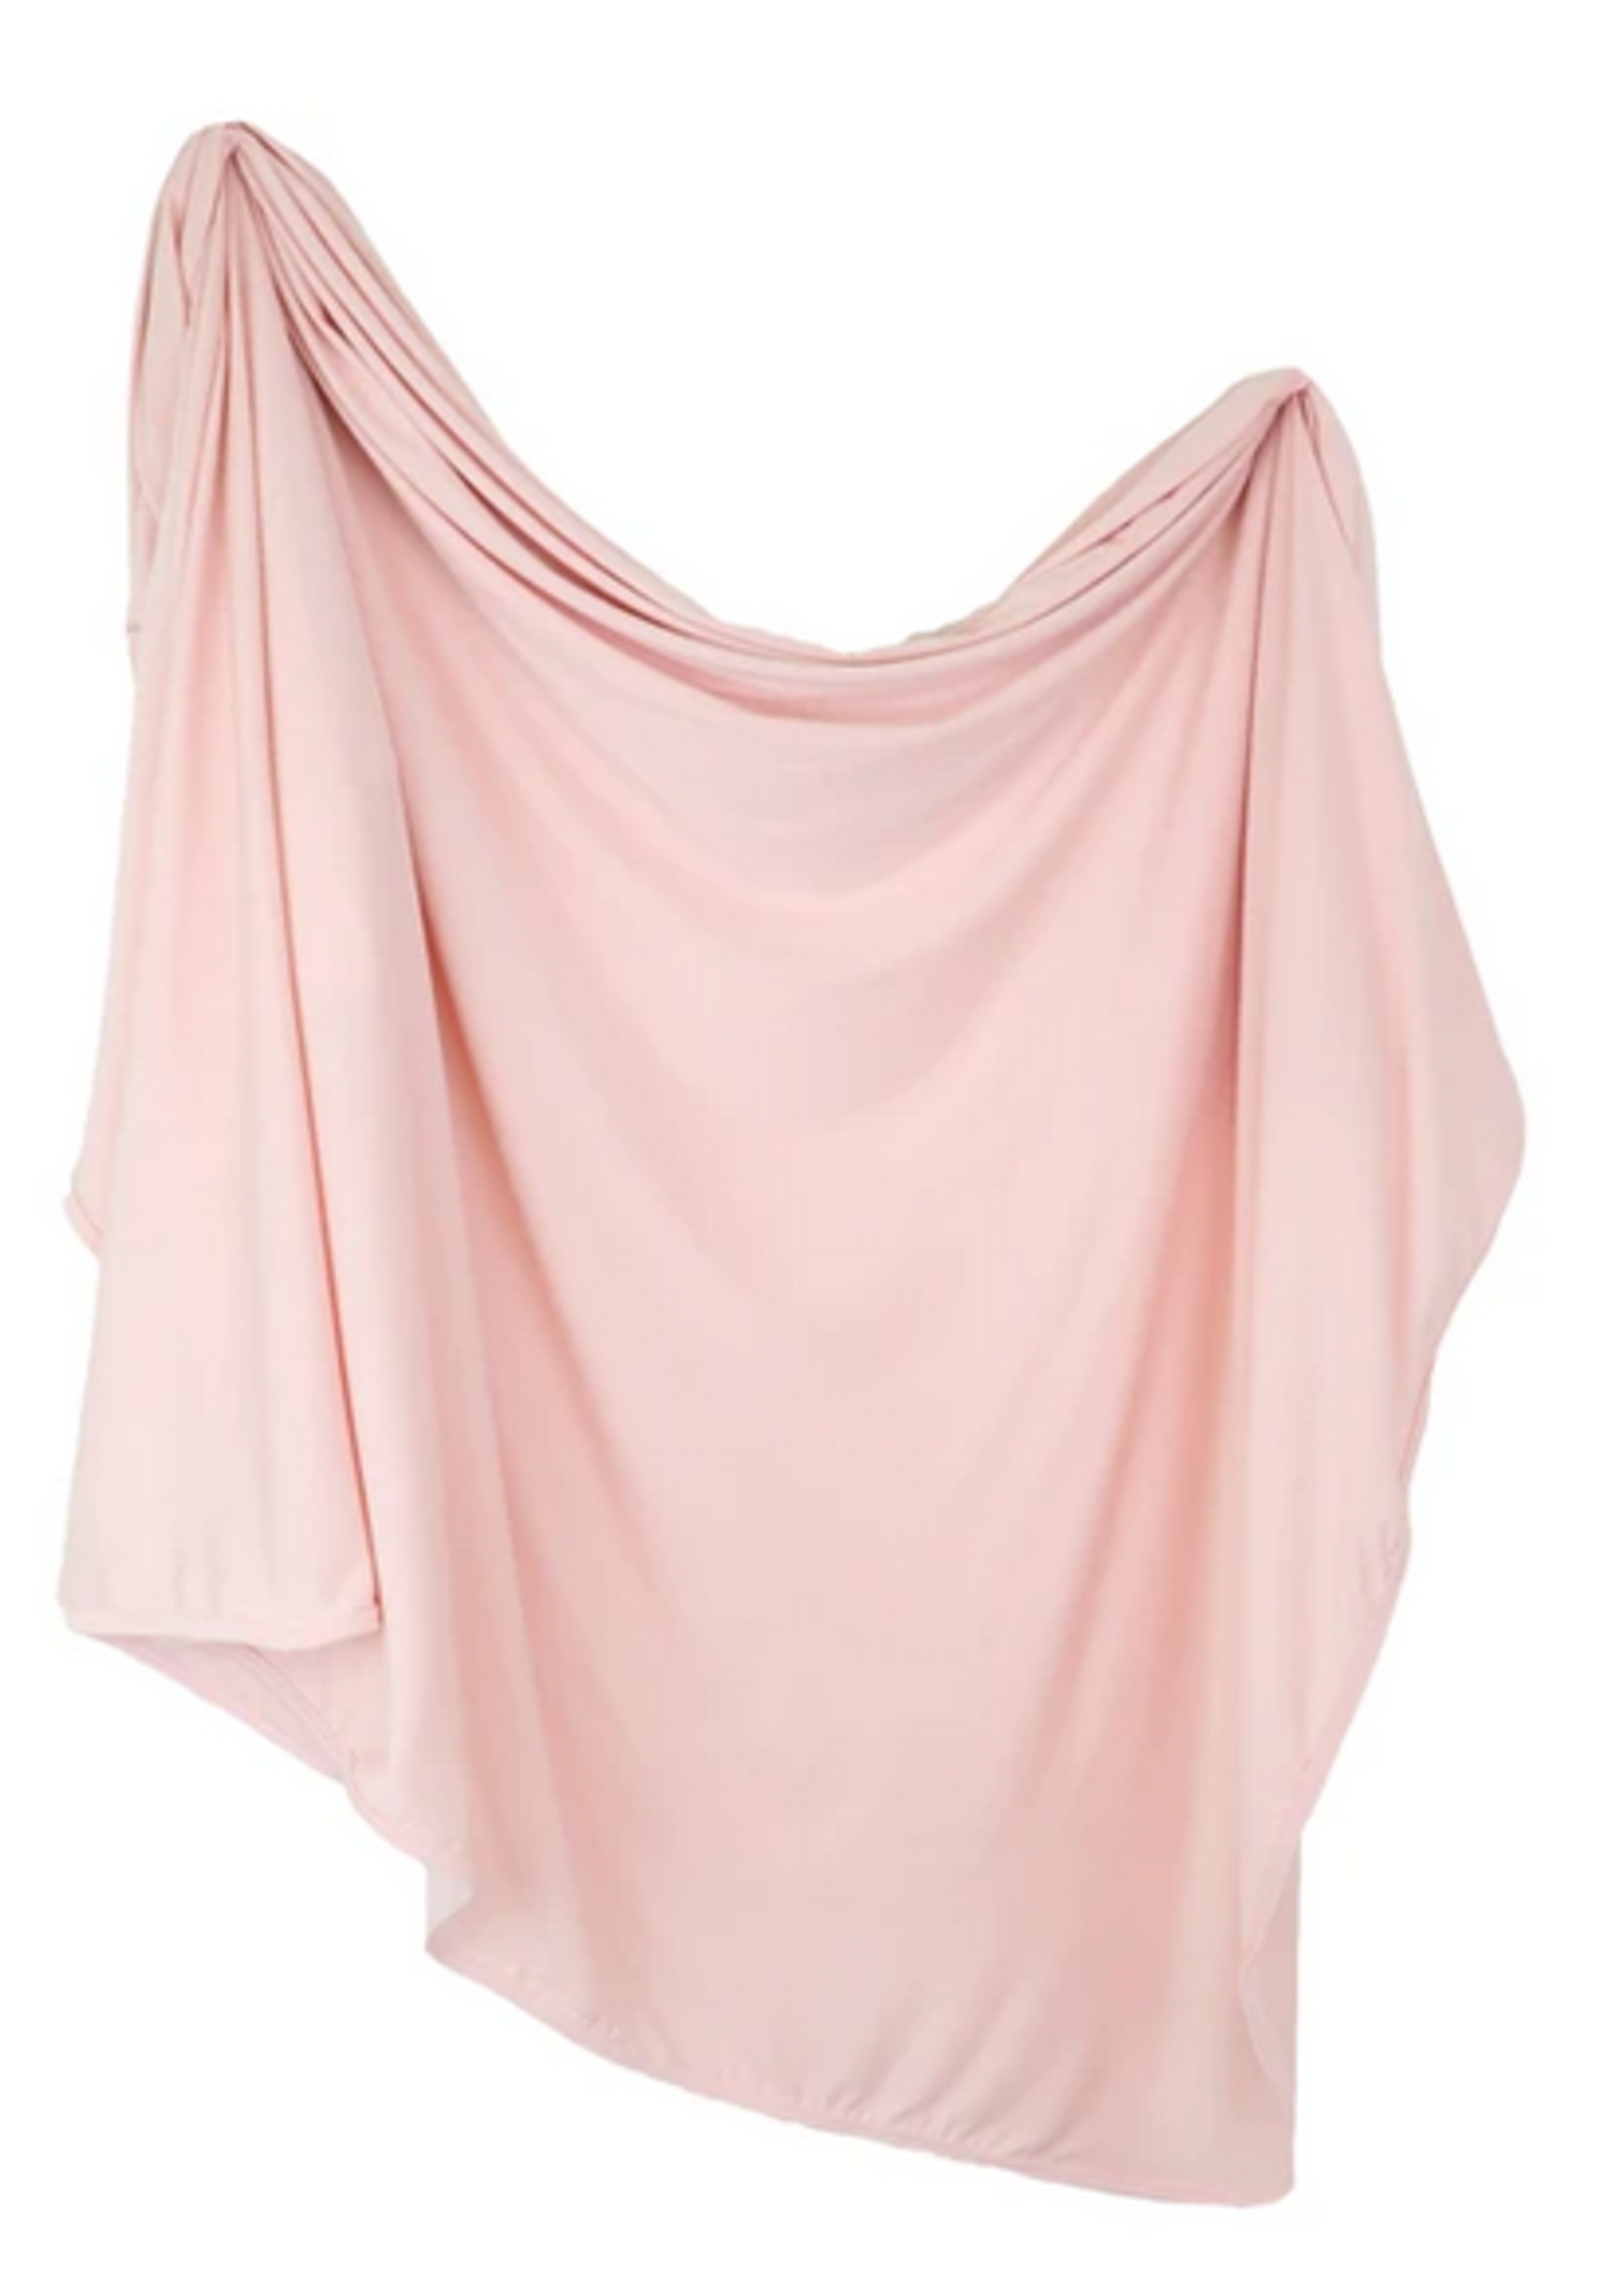 Elitaire Petite Ava Pink Knit Swaddle Blanket